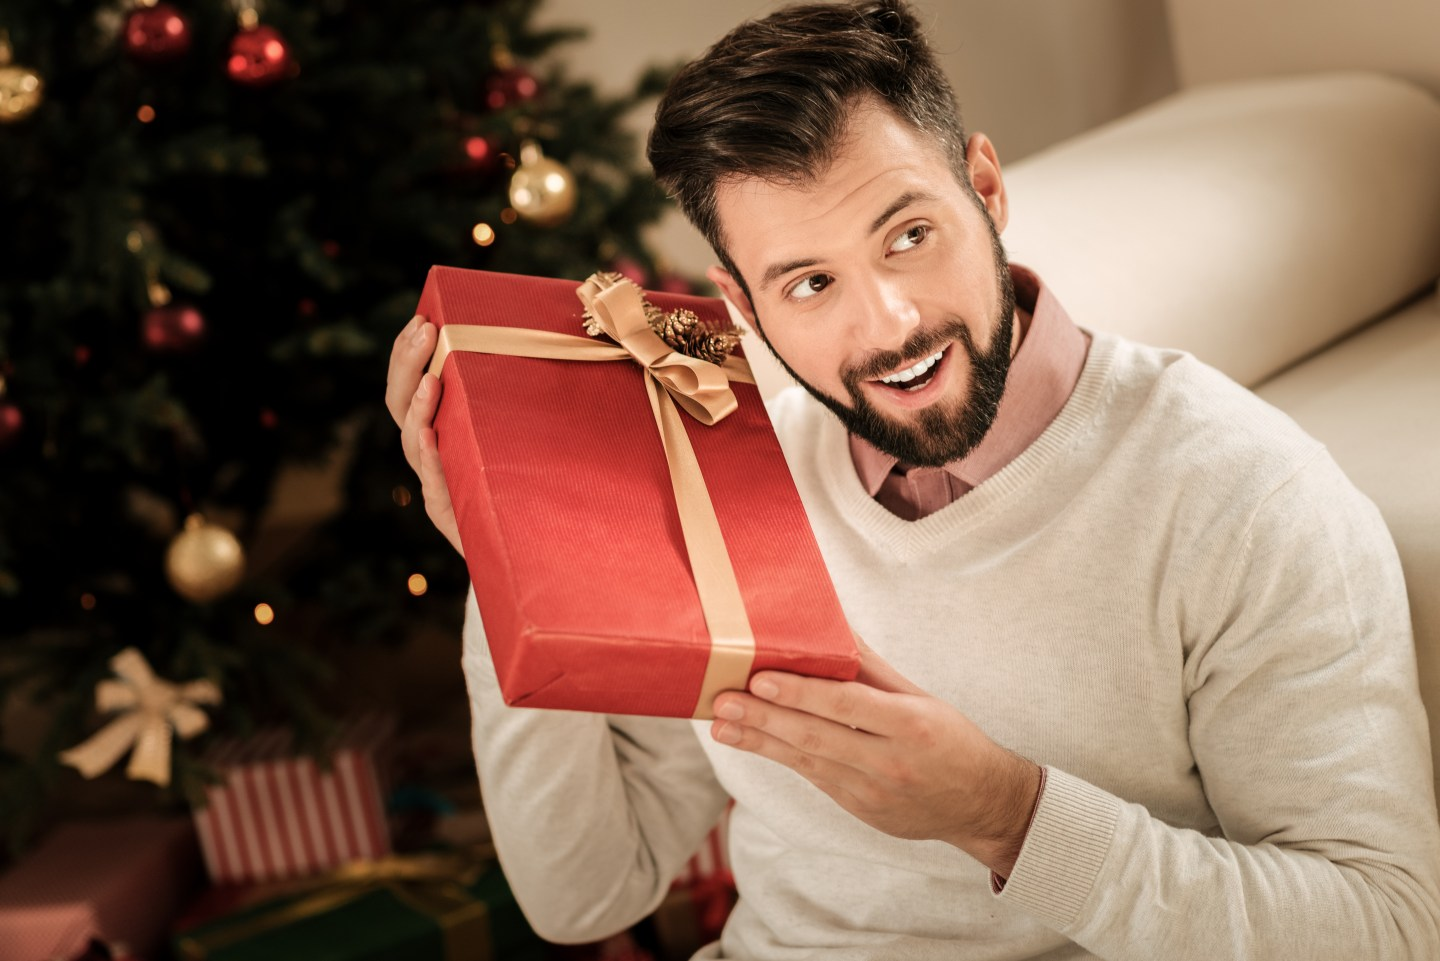 Gifts For Him: Awesome And Affordable Christmas Gift Ideas For Men